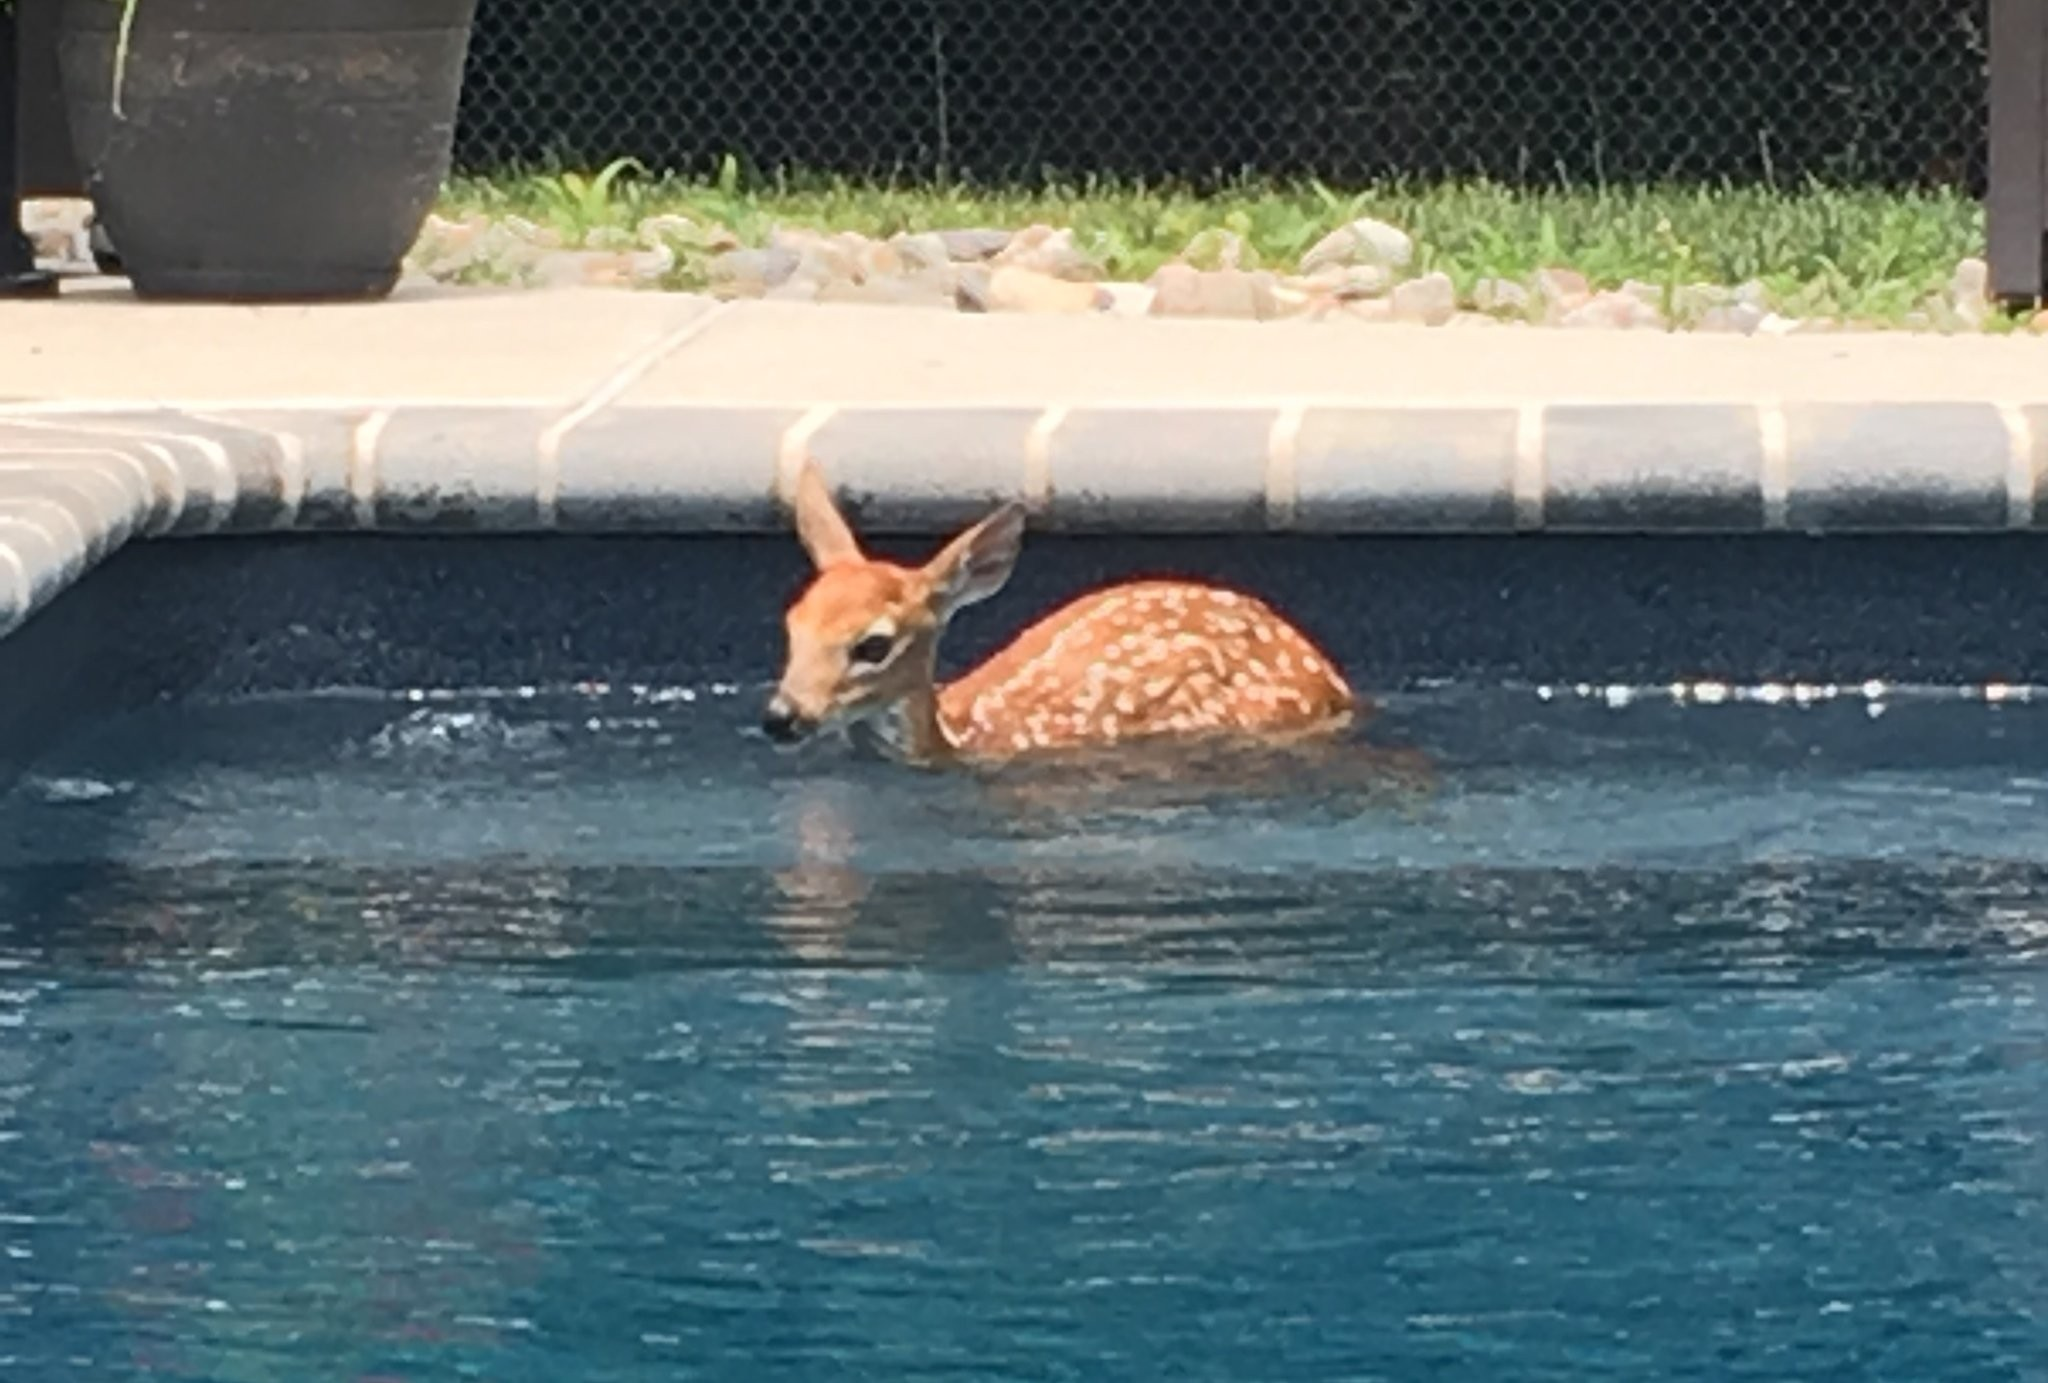 WATCH: Baby deer sneaks into family's pool, swims laps daily - nj.com